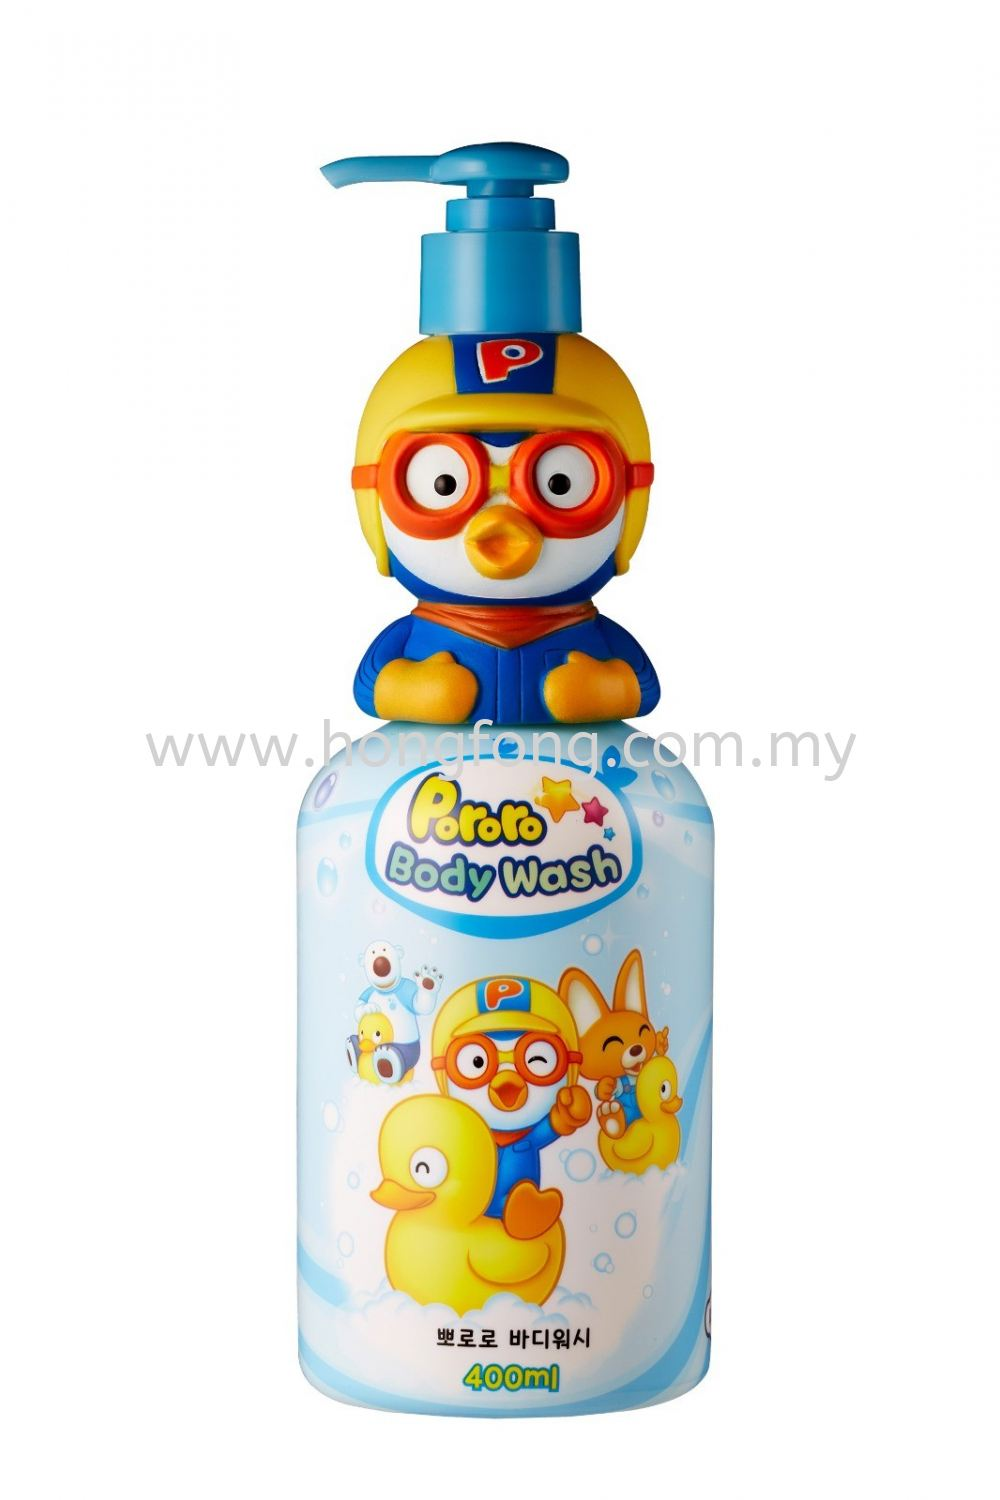 HF Koea Pororo Children Body wash